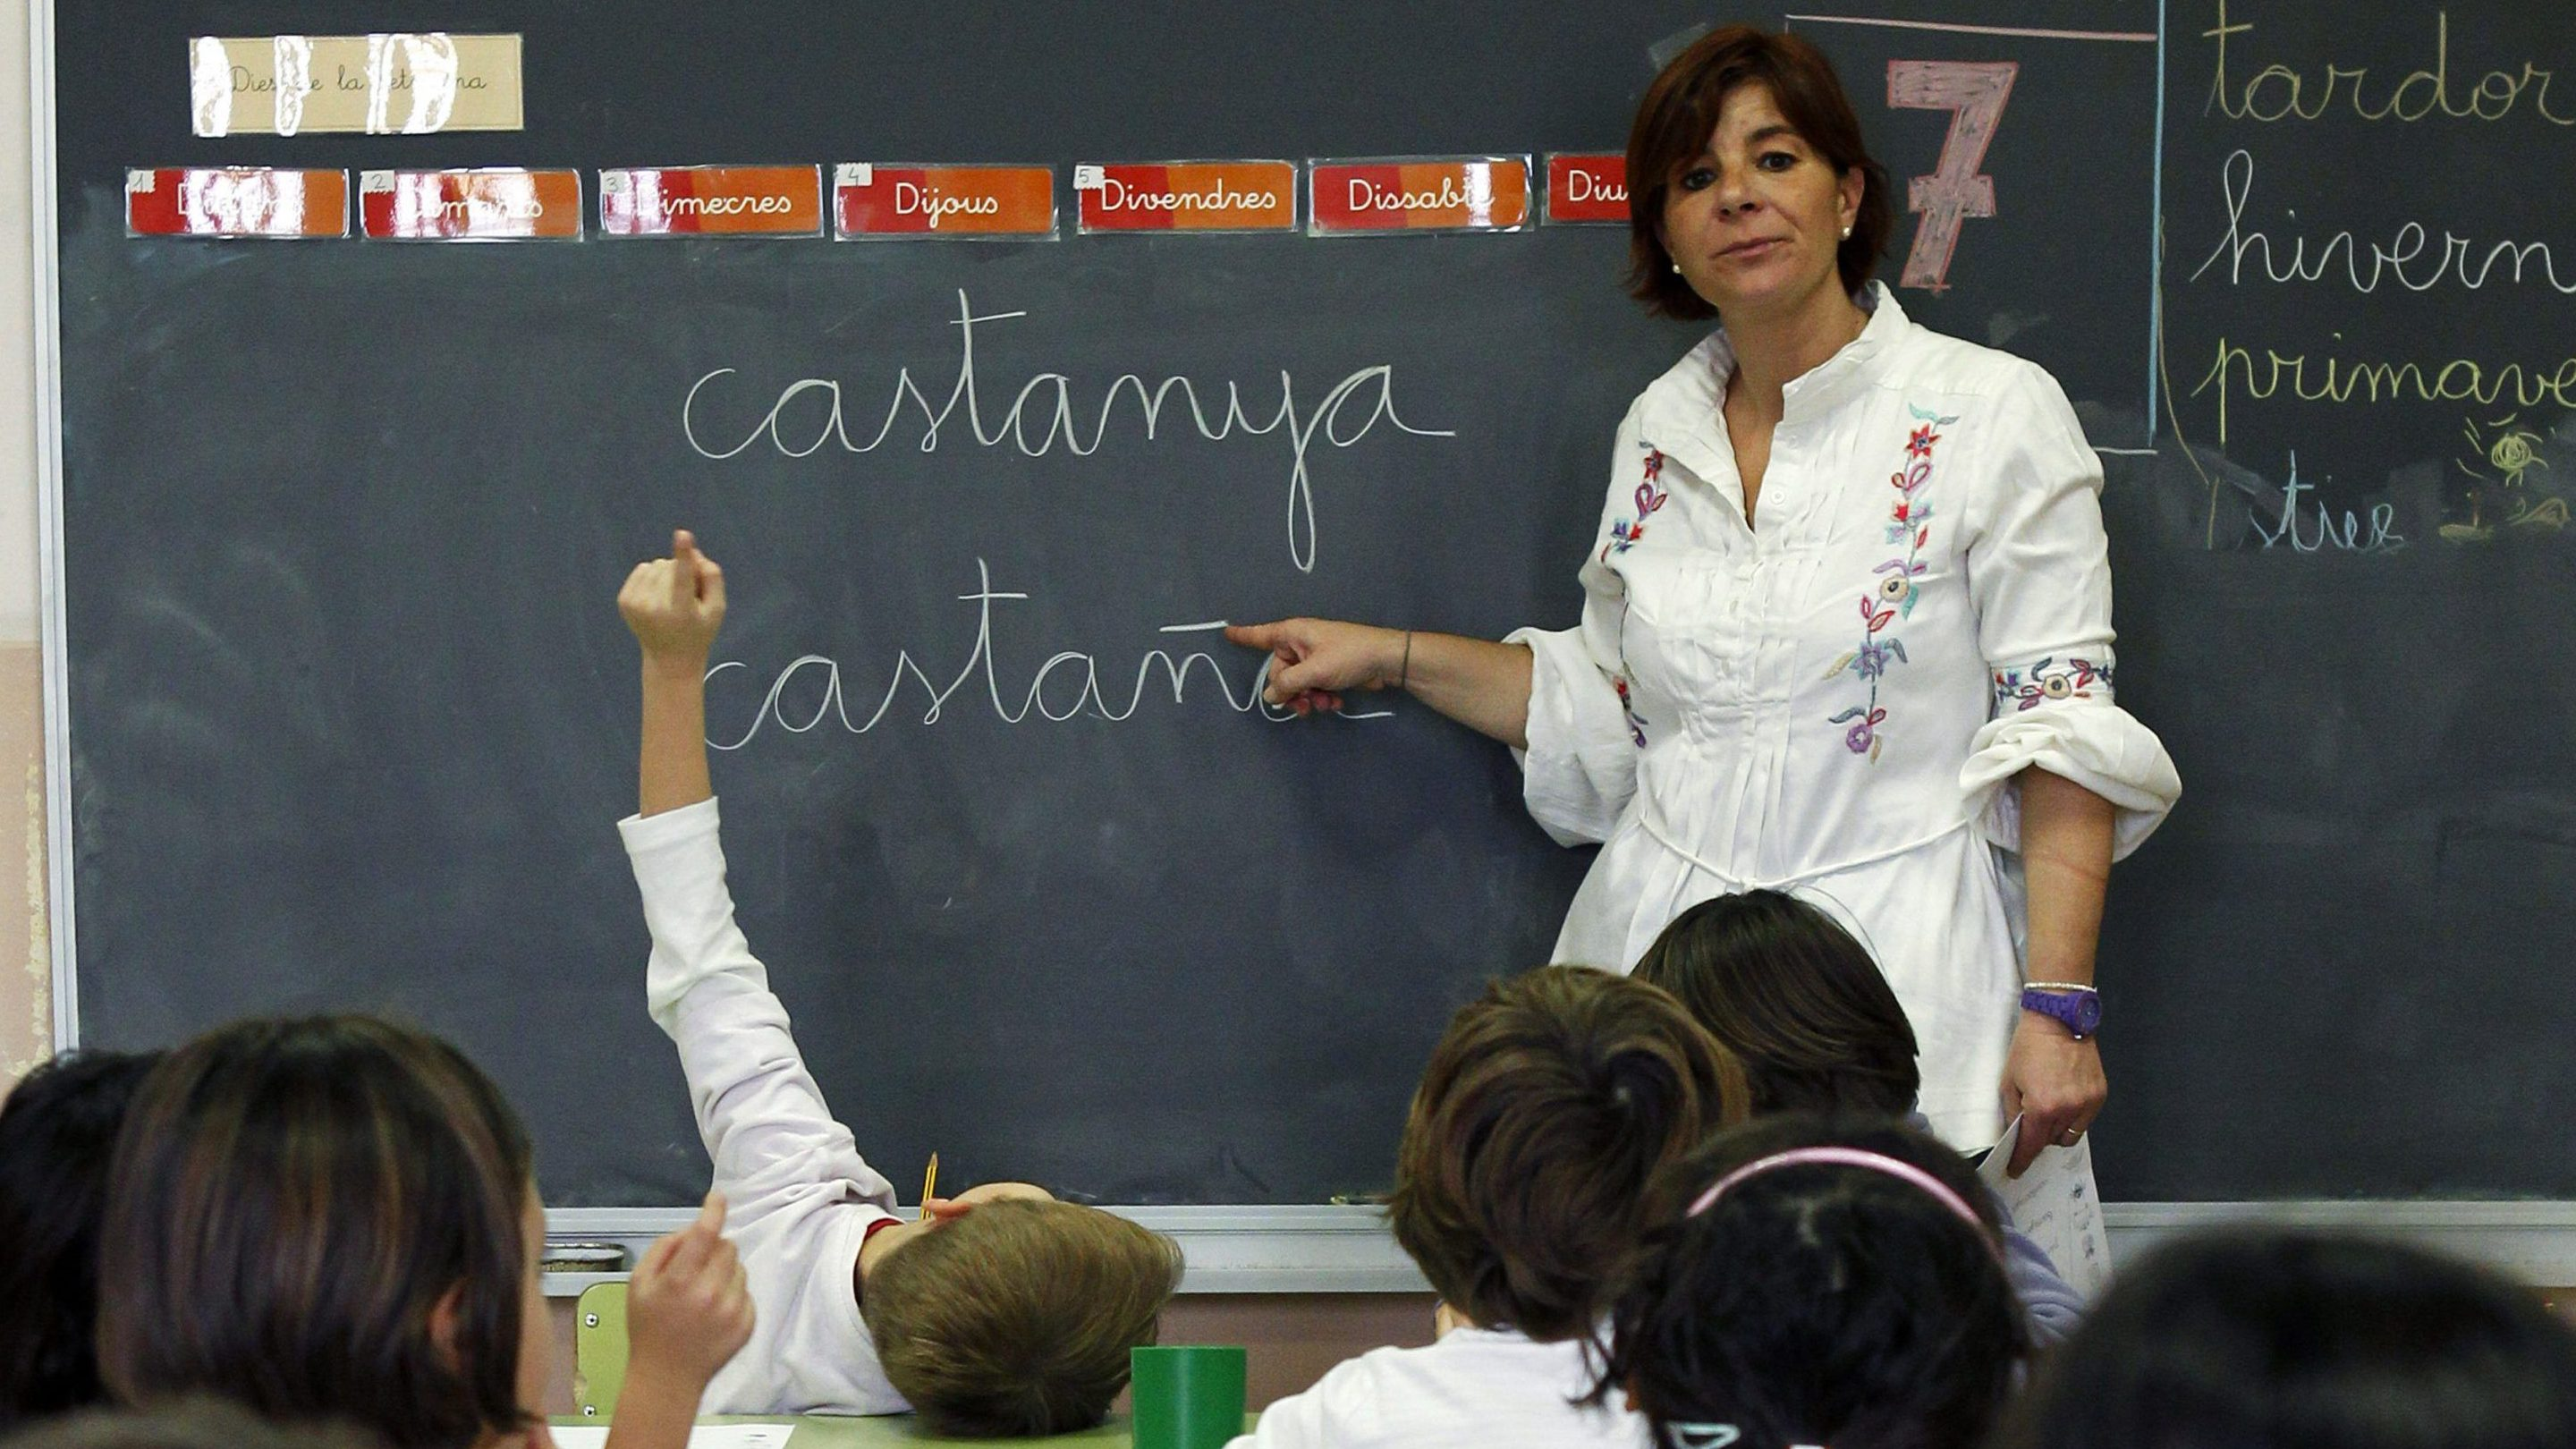 """School teacher Jorgina Fontboter points to a blackboard with words in Catalan and in Spanish during a language class at a public school in El Masnou, near Barcelona, December 14, 2012. The wealthy northeastern region of Catalonia last month dropped plans for a non-binding referendum on independence from Spain on Nov. 9 after a court declared such a vote against the constitution and had instead planned to hold a """"consultation of citizens"""" on the same day. Although Spanish Prime Minister Mariano Rajoy and politicians in Catalonia have called for dialogue over the region's status after the initial referendum plans were abandoned, tensions are still simmering before the Nov. 9 alternative vote. Picture taken December 14, 2014. REUTERS/Albert Gea (SPAIN) - Tags: POLITICS EDUCATION) ATTENTION EDITORS: PICTURE 13 OF 25 FOR WIDER IMAGE PACKAGE 'CATALONIA - THE CONSULTATION OF CITIZENS' TO FIND ALL IMAGES SEARCH 'CITIZENS' - RTR4D3U9"""